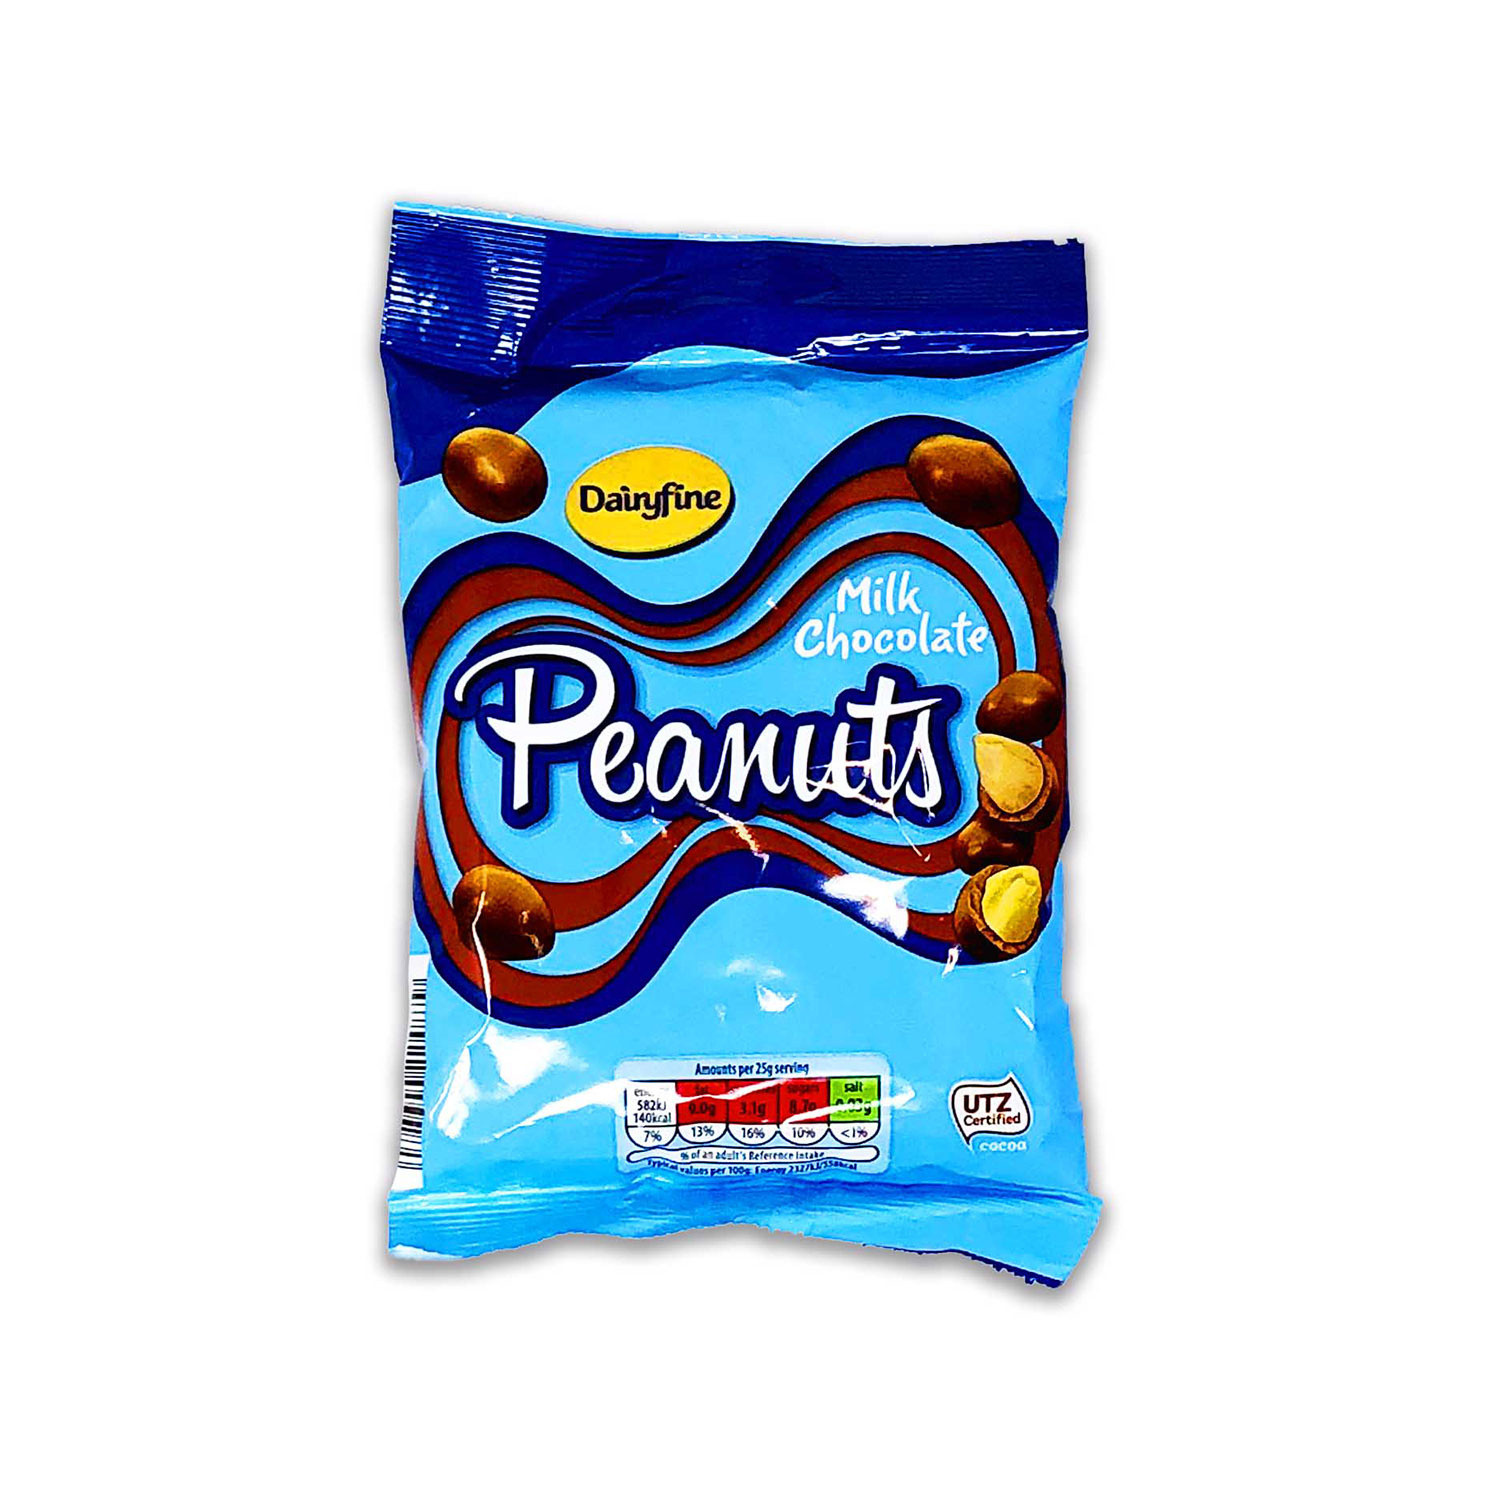 Dairyfine Chocolate Peanuts